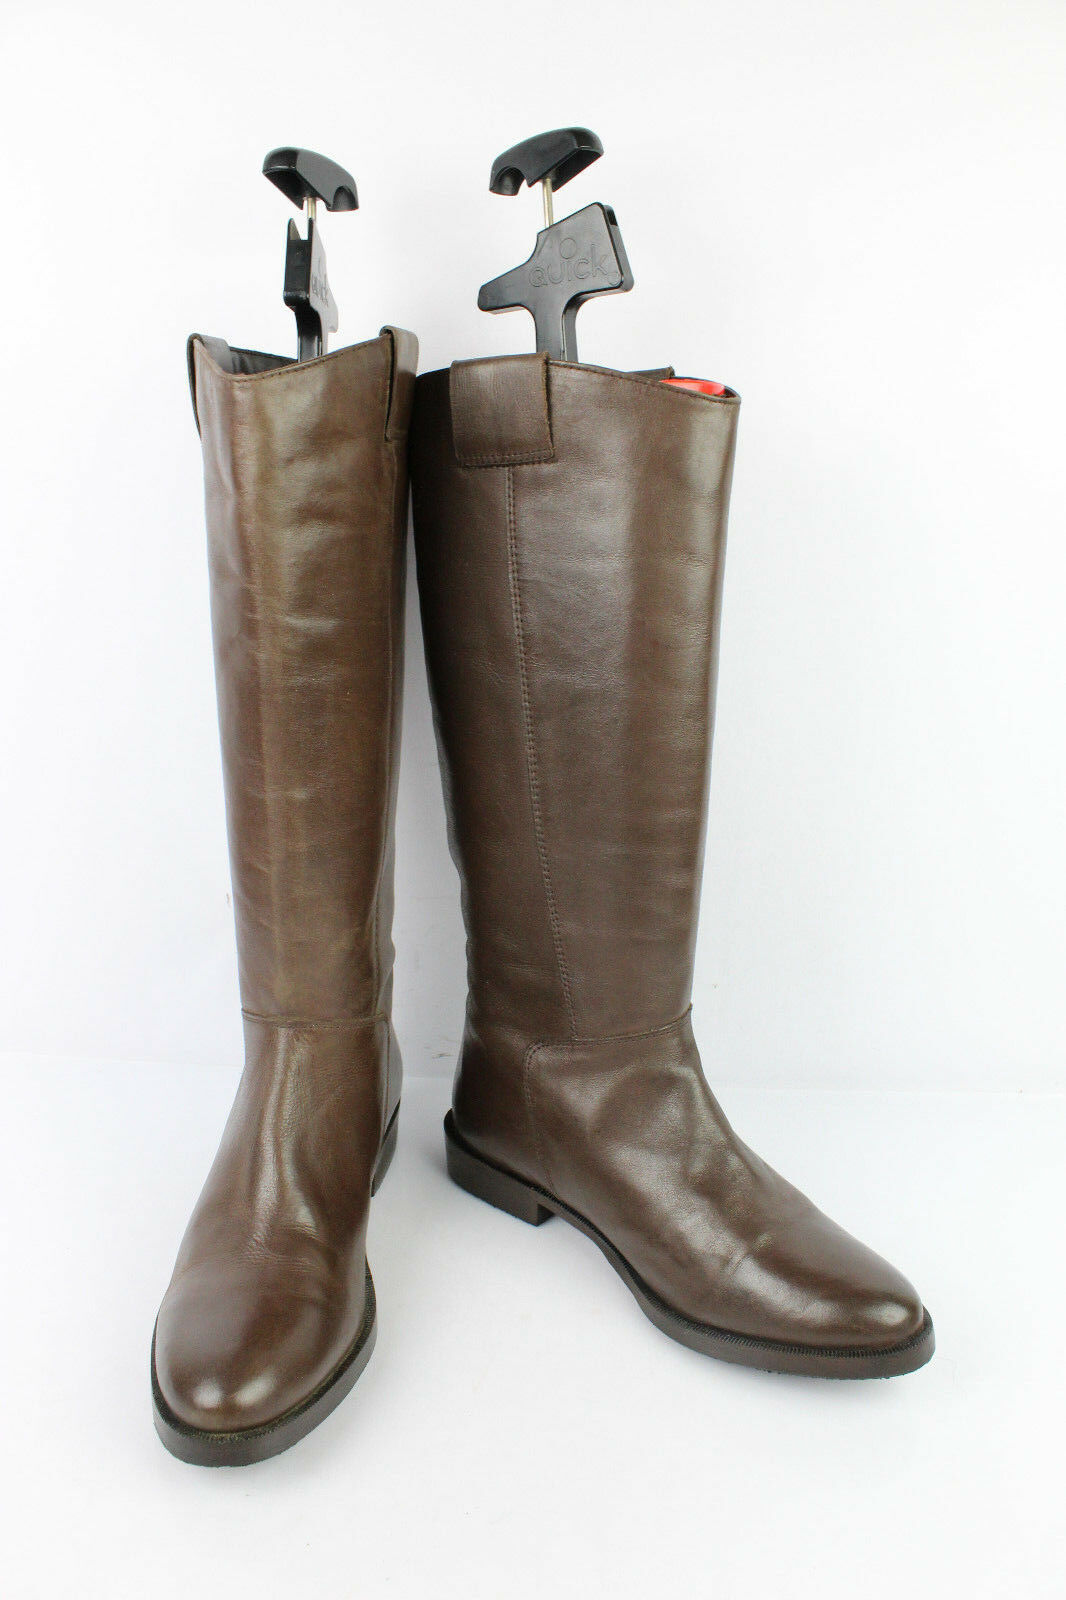 Boots ELITE Brown Leather T 38 VERY GOOD CONDITION